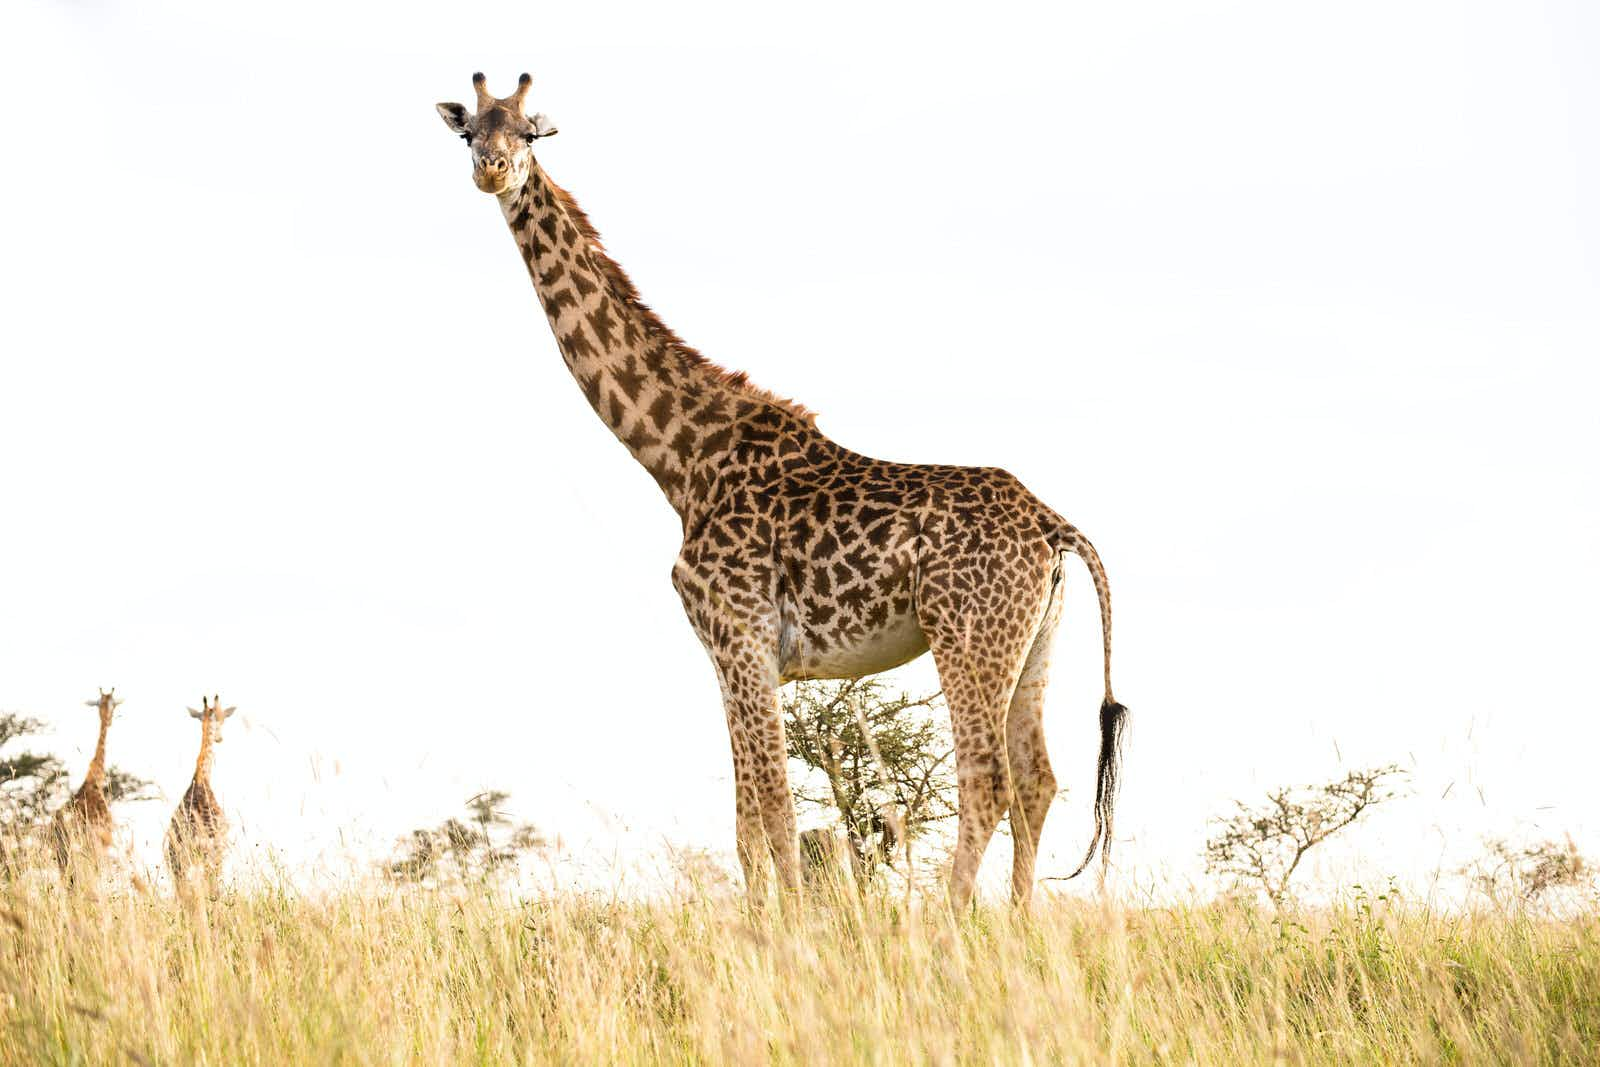 A large standing against a white-sky backdrop, with two distant giraffe walking away. © Maria Swärd / Getty Images